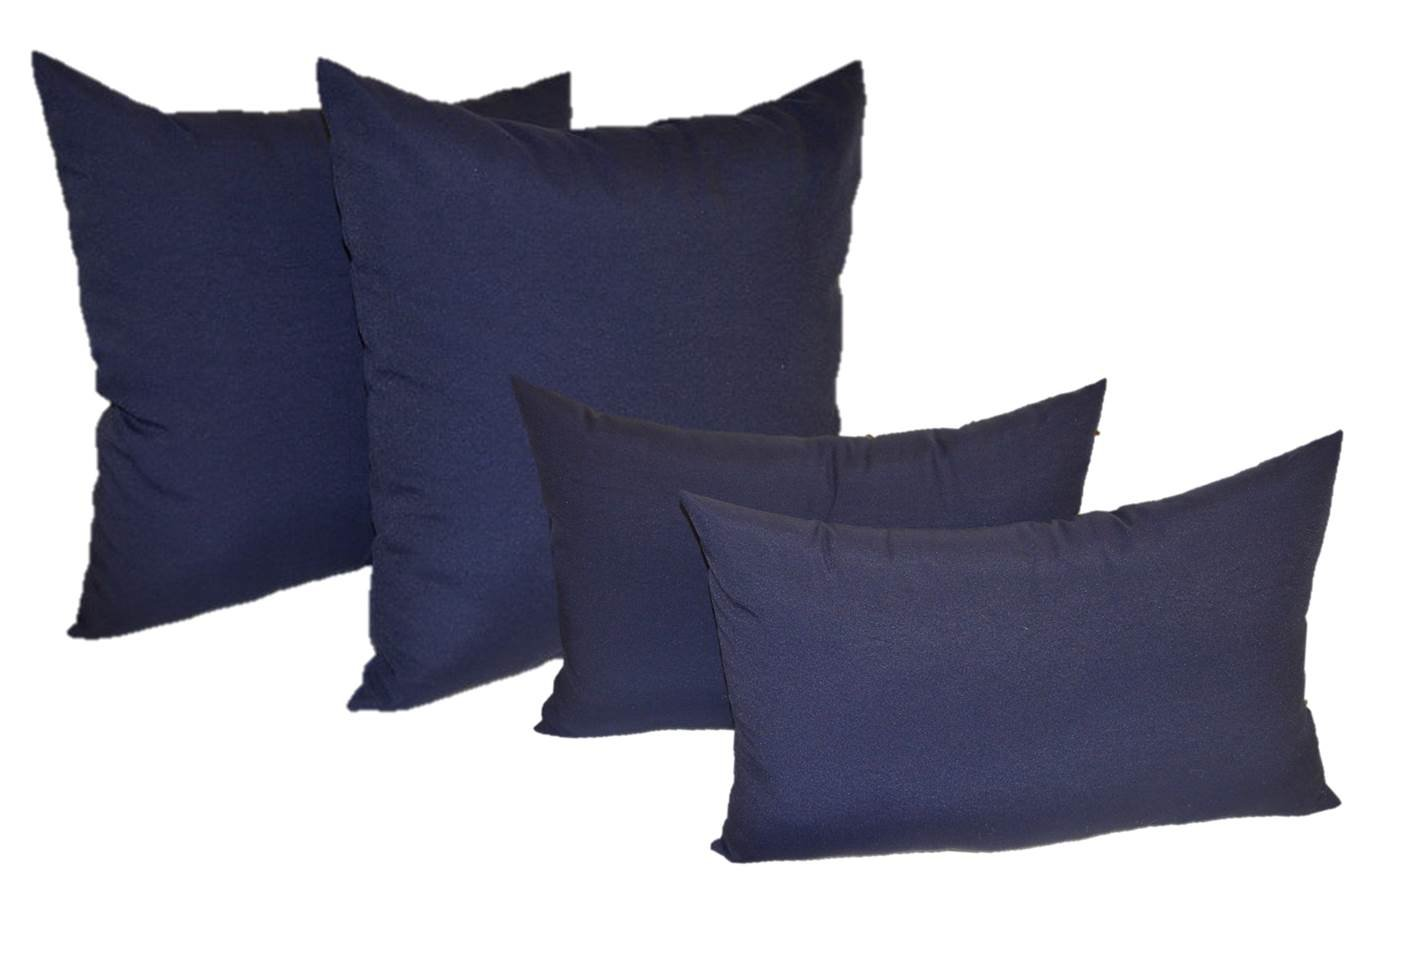 Set of 4 Indoor / Outdoor Pillows - 2 Square Pillows & 2 Rectangle / Lumbar Decorative Throw Pillows - Solid Navy Blue Fabric (20'' x 20'' square & 11'' x 19'' lumbar) by Resort Spa Home (Image #1)